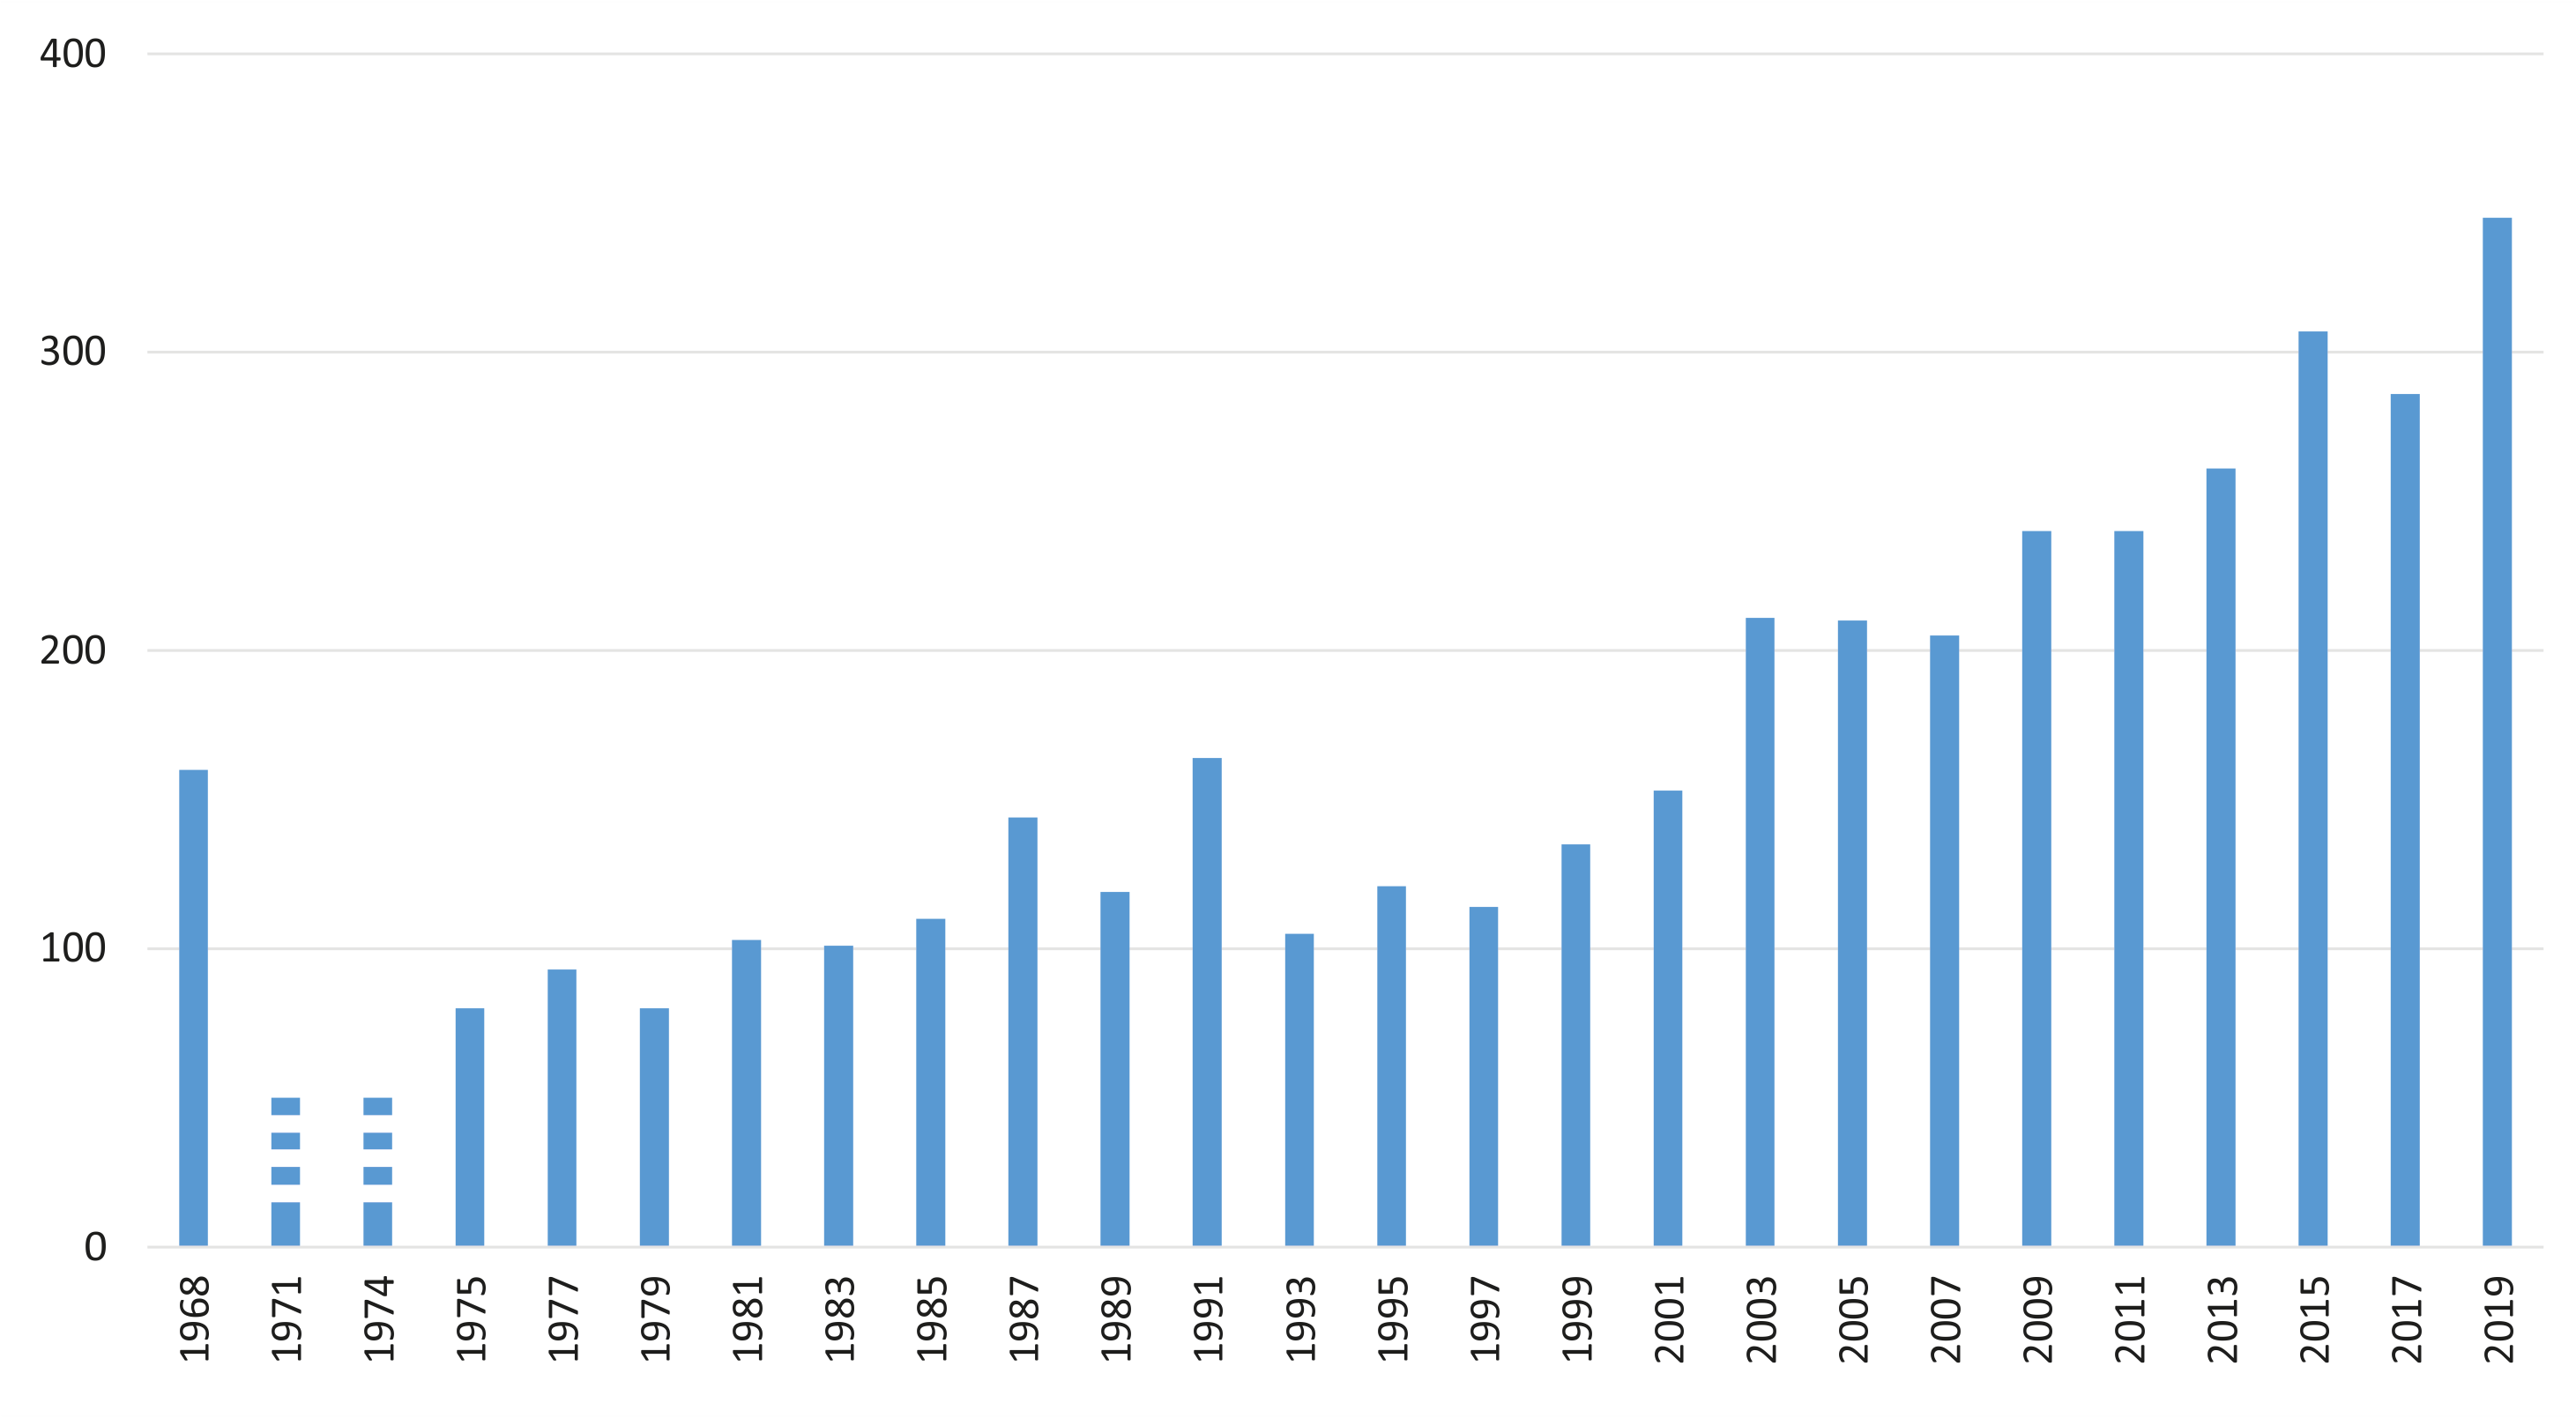 Graph of number of participants of IAVSD symposia